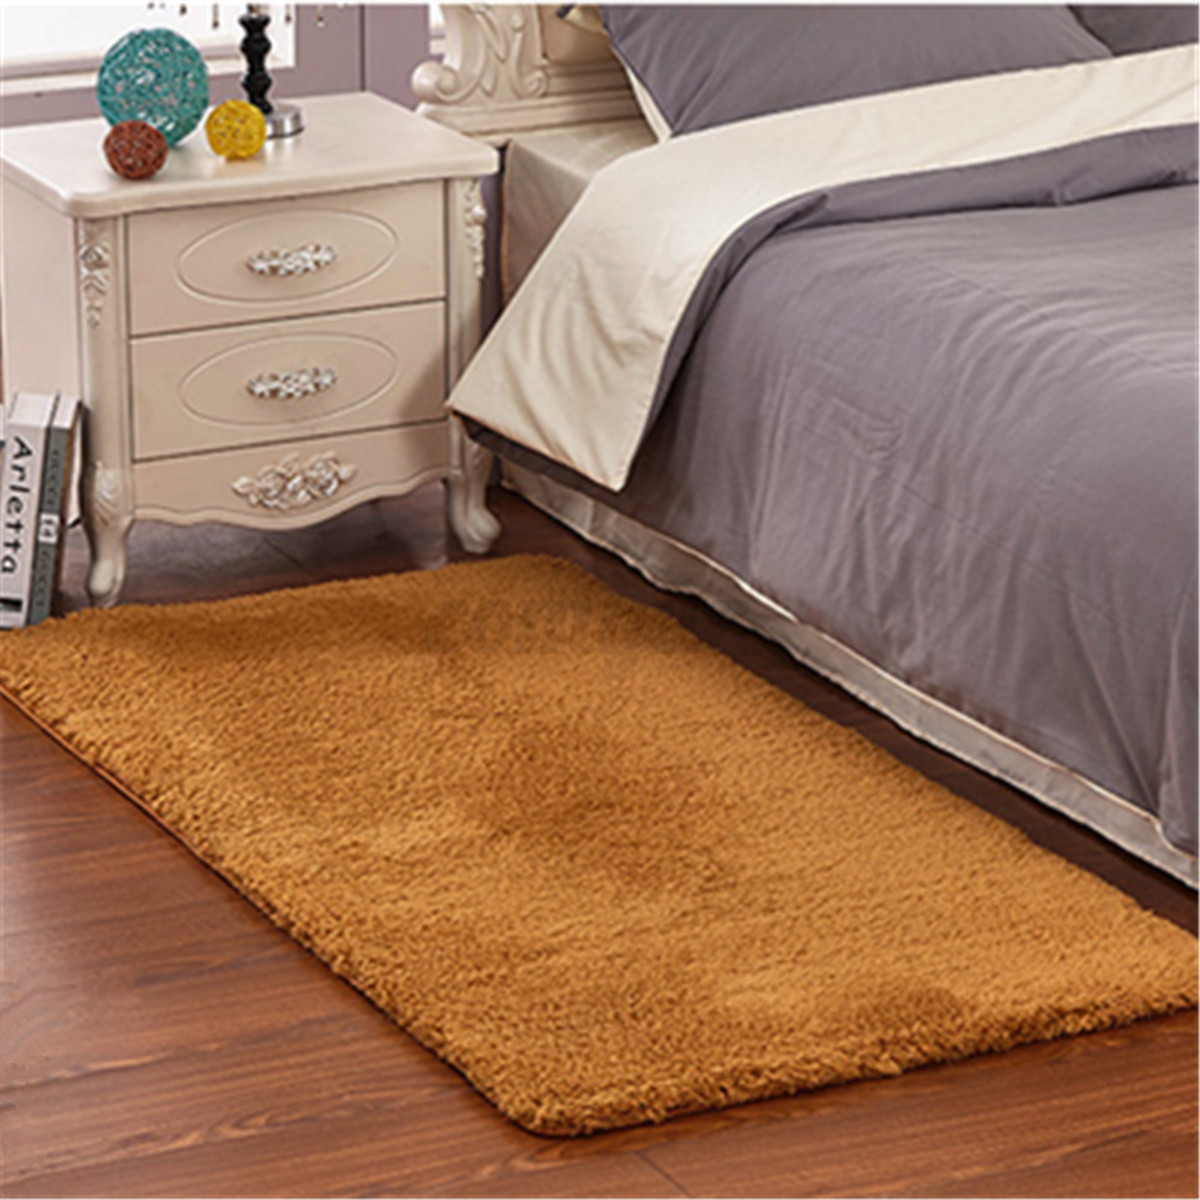 60x120cm anti skid shaggy fluffy area rug bedroom carpet for Bedroom rugs